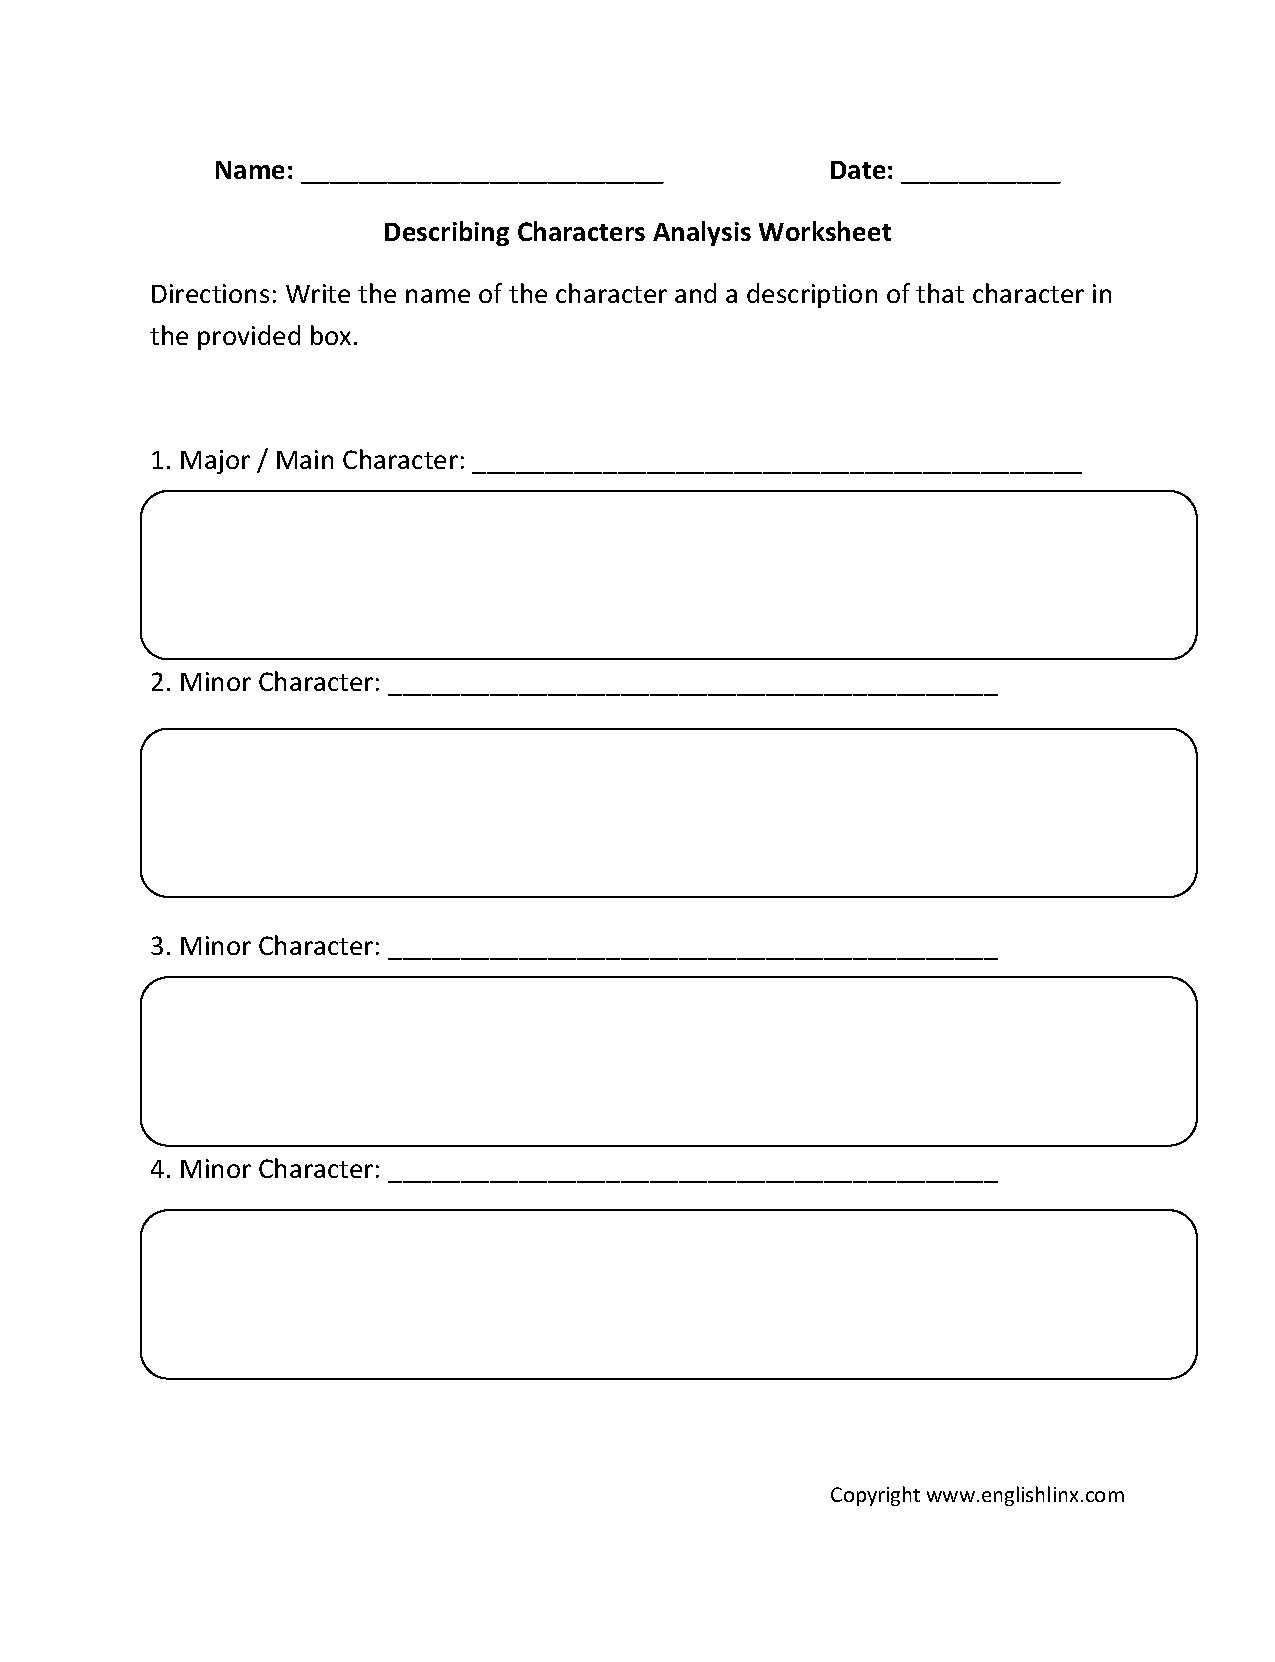 Printables Of Characterysis Worksheet